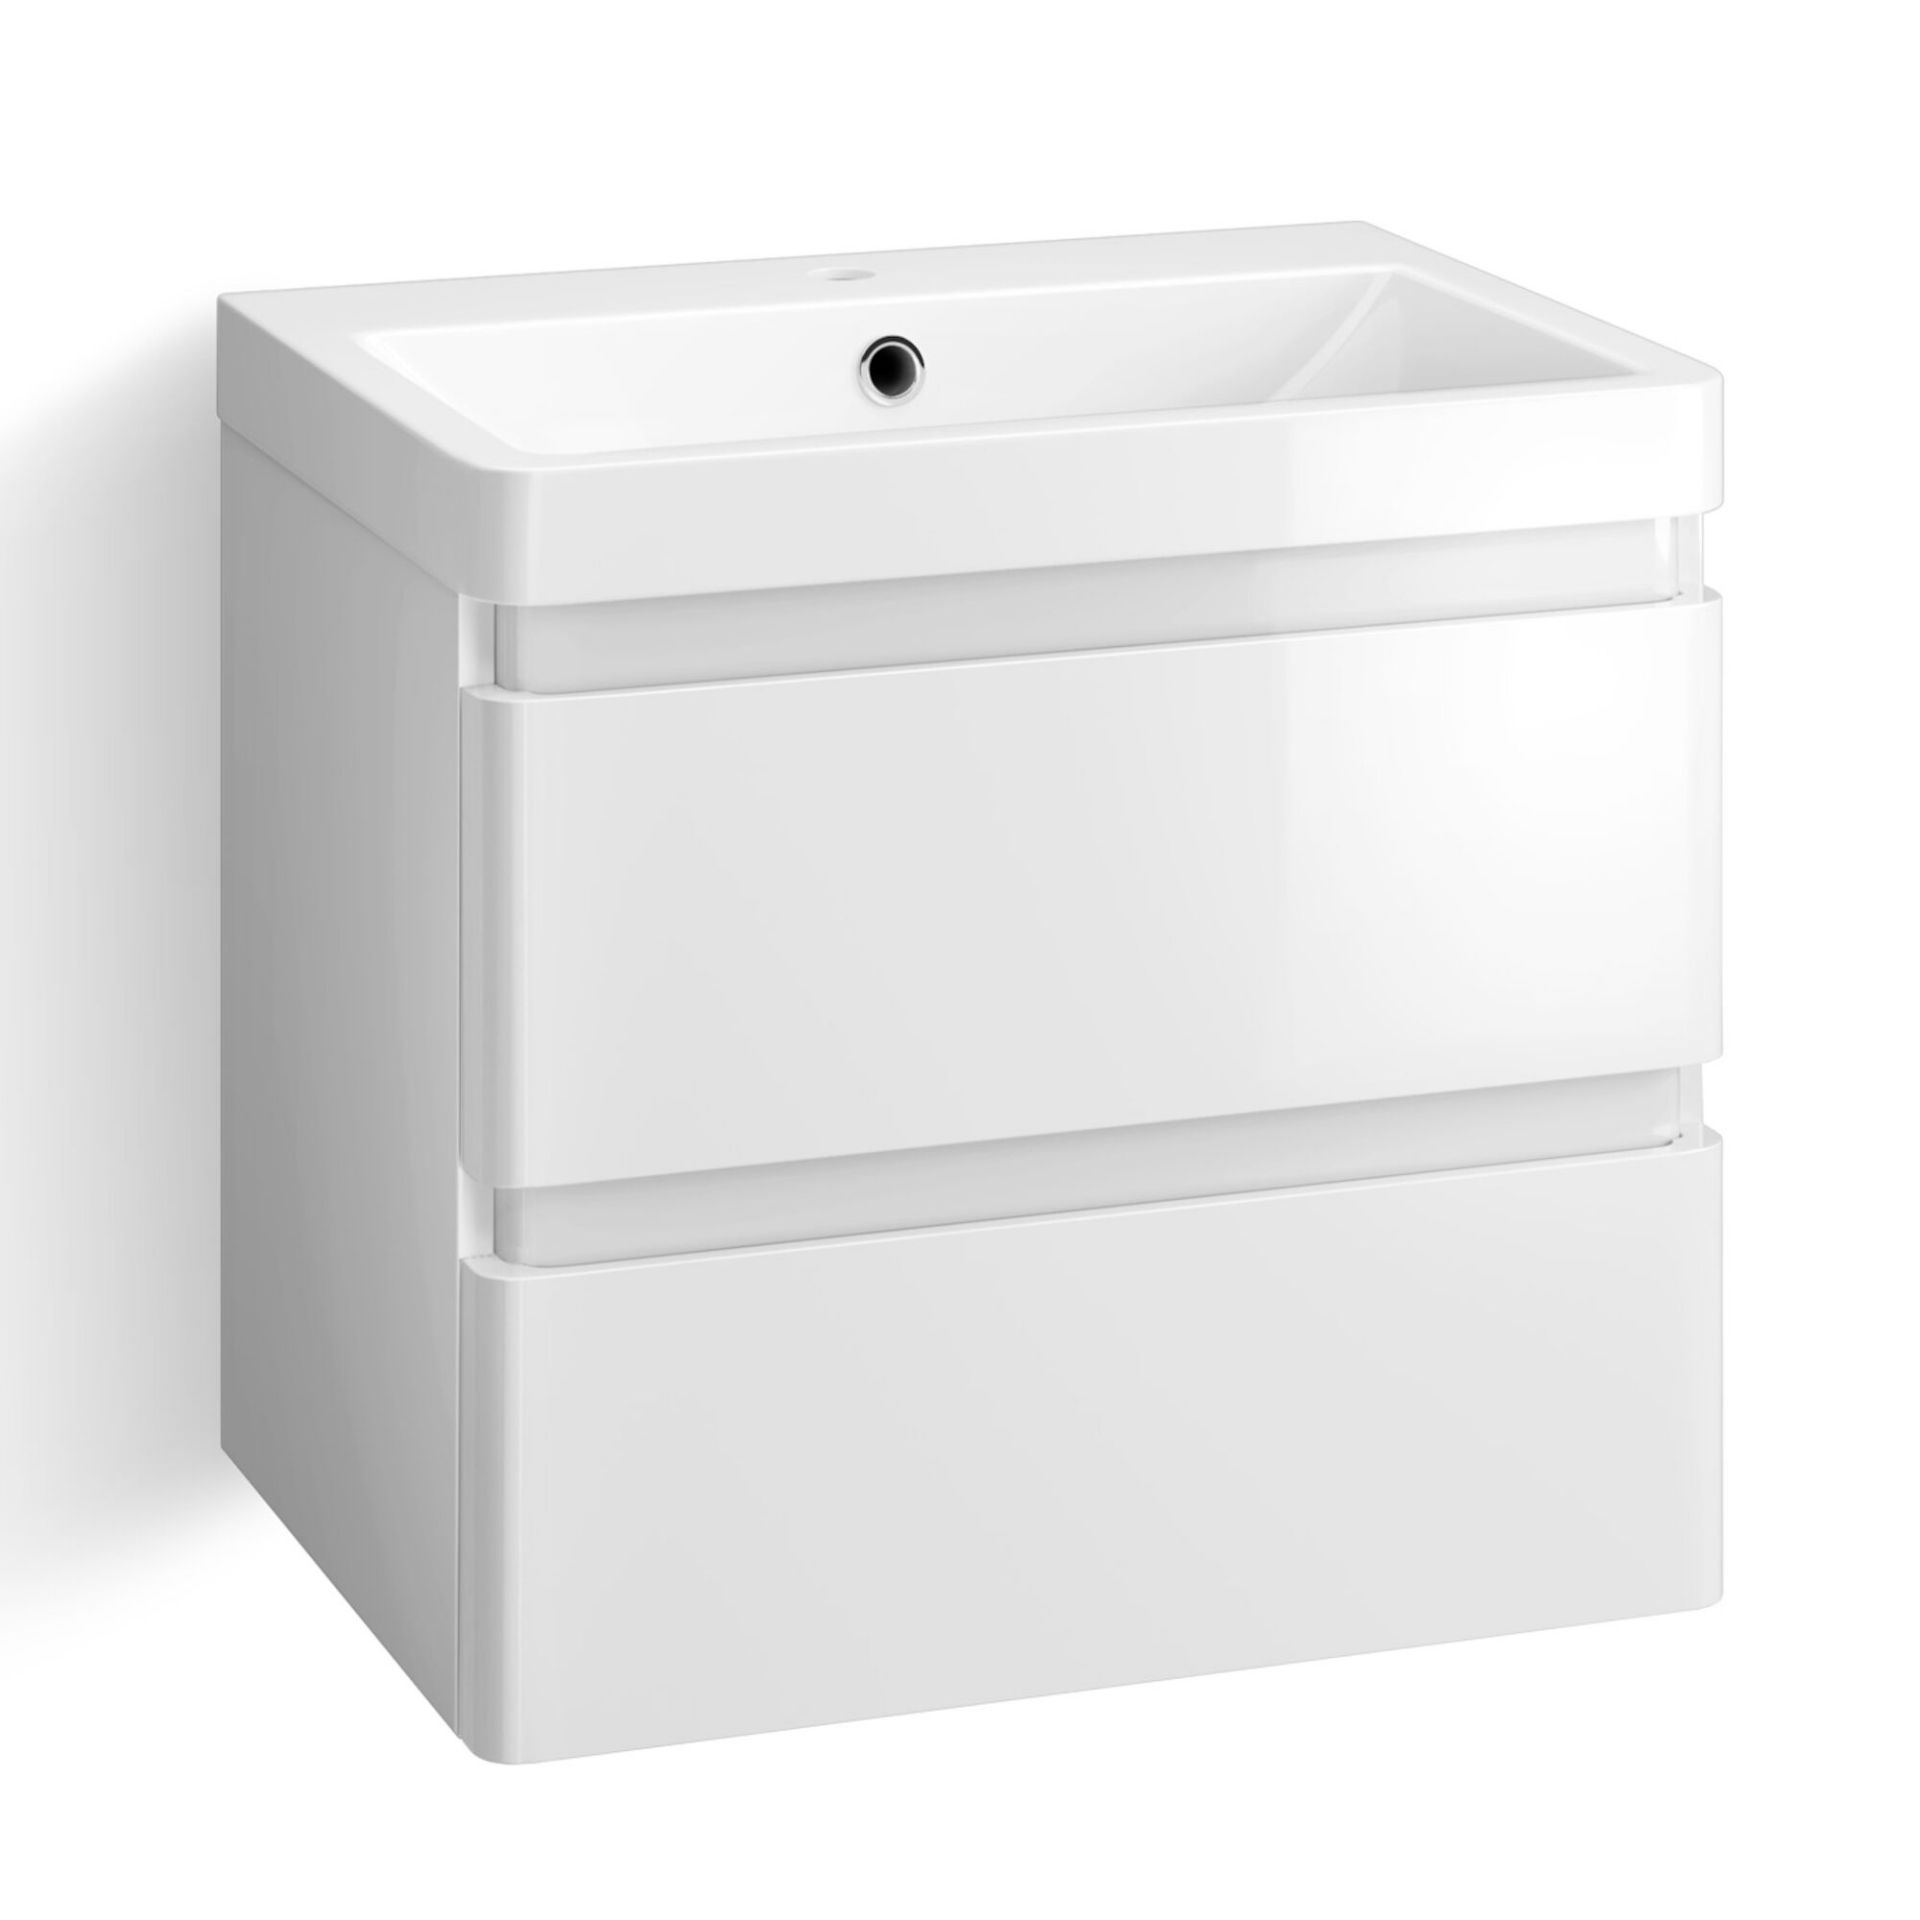 Lot 54 - (SP40) 600mm Denver Gloss White Built In Basin Drawer Unit - Wall Hung. RRP £499.99. Comes